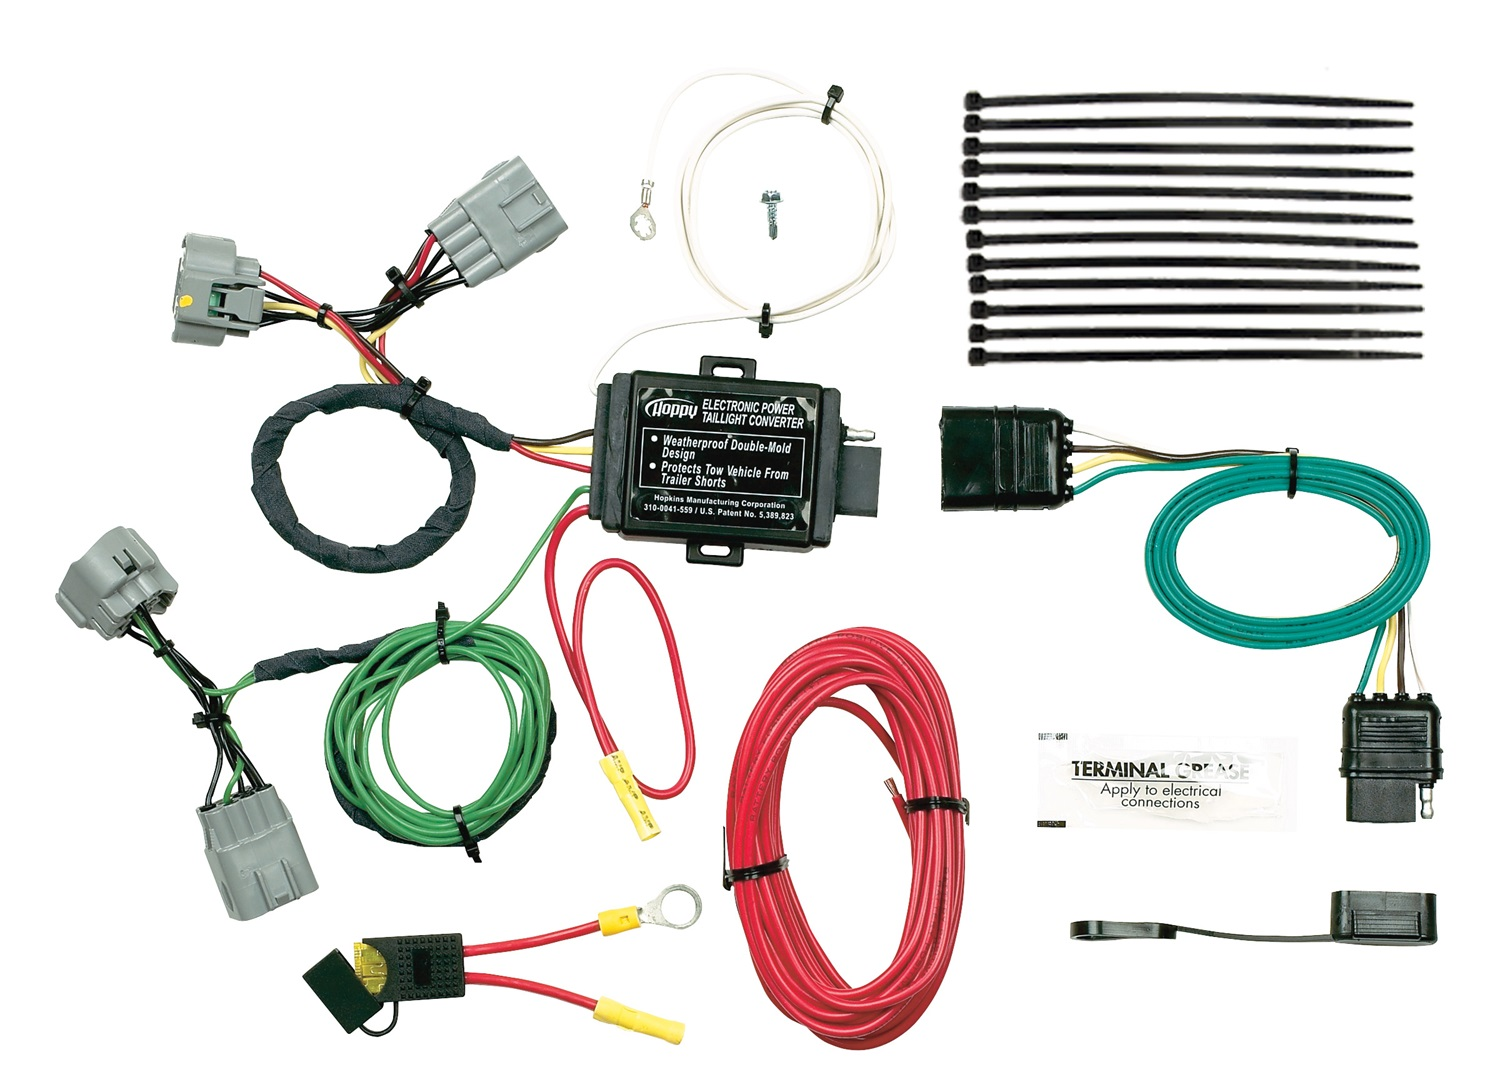 Hopkins Towing Solution 42545 Plug In Simple Vehicle To Trailer 2004 Workhorse Wiring Diagram Harness